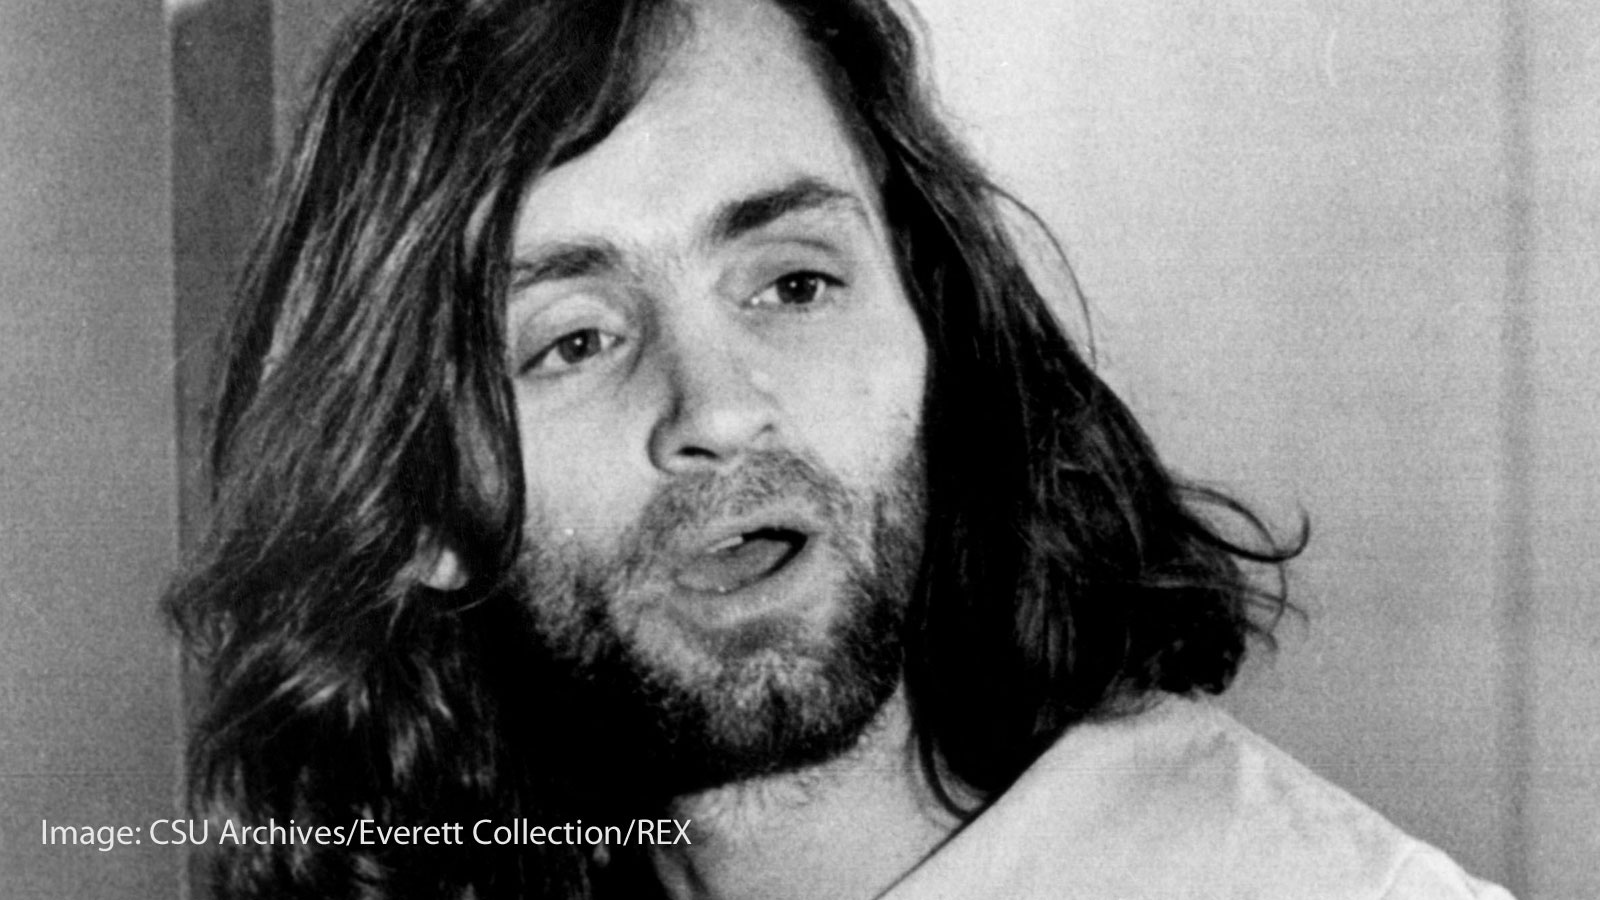 a biography of charles manson one of the most sinister and evil criminals These examples stand-out among history's most depraved serial killers,   dahmer's arrest, cementing his place as one of history's most evil villians   killers is complete without references to the crimes of charles manson.